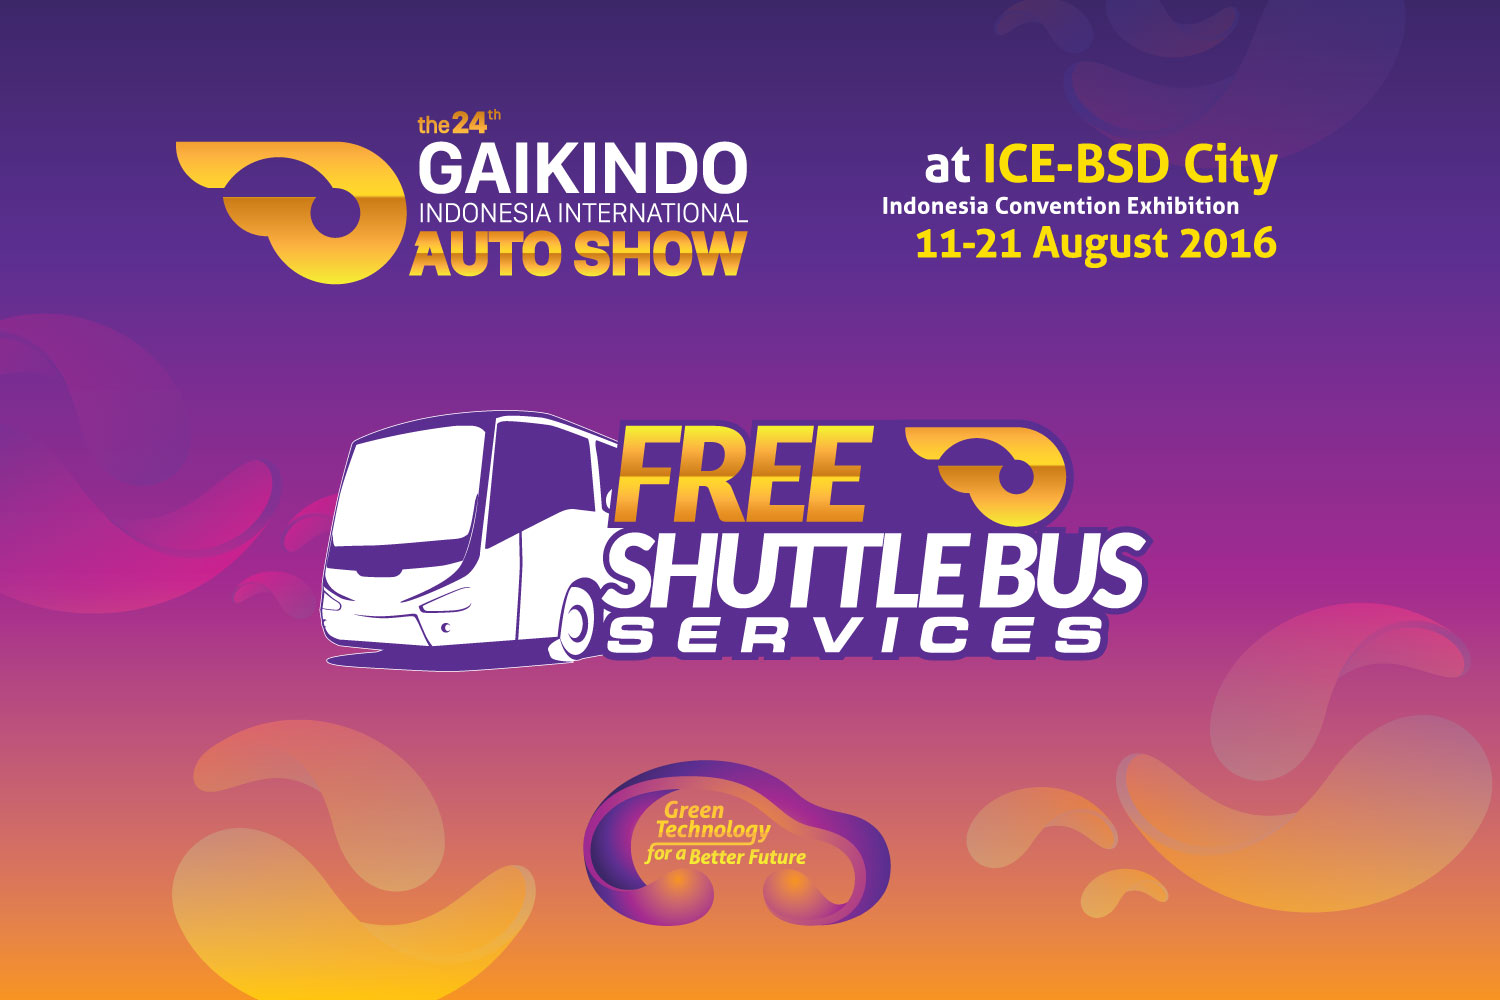 GIIAS ROUND TRIP SHUTTLE SERVICES